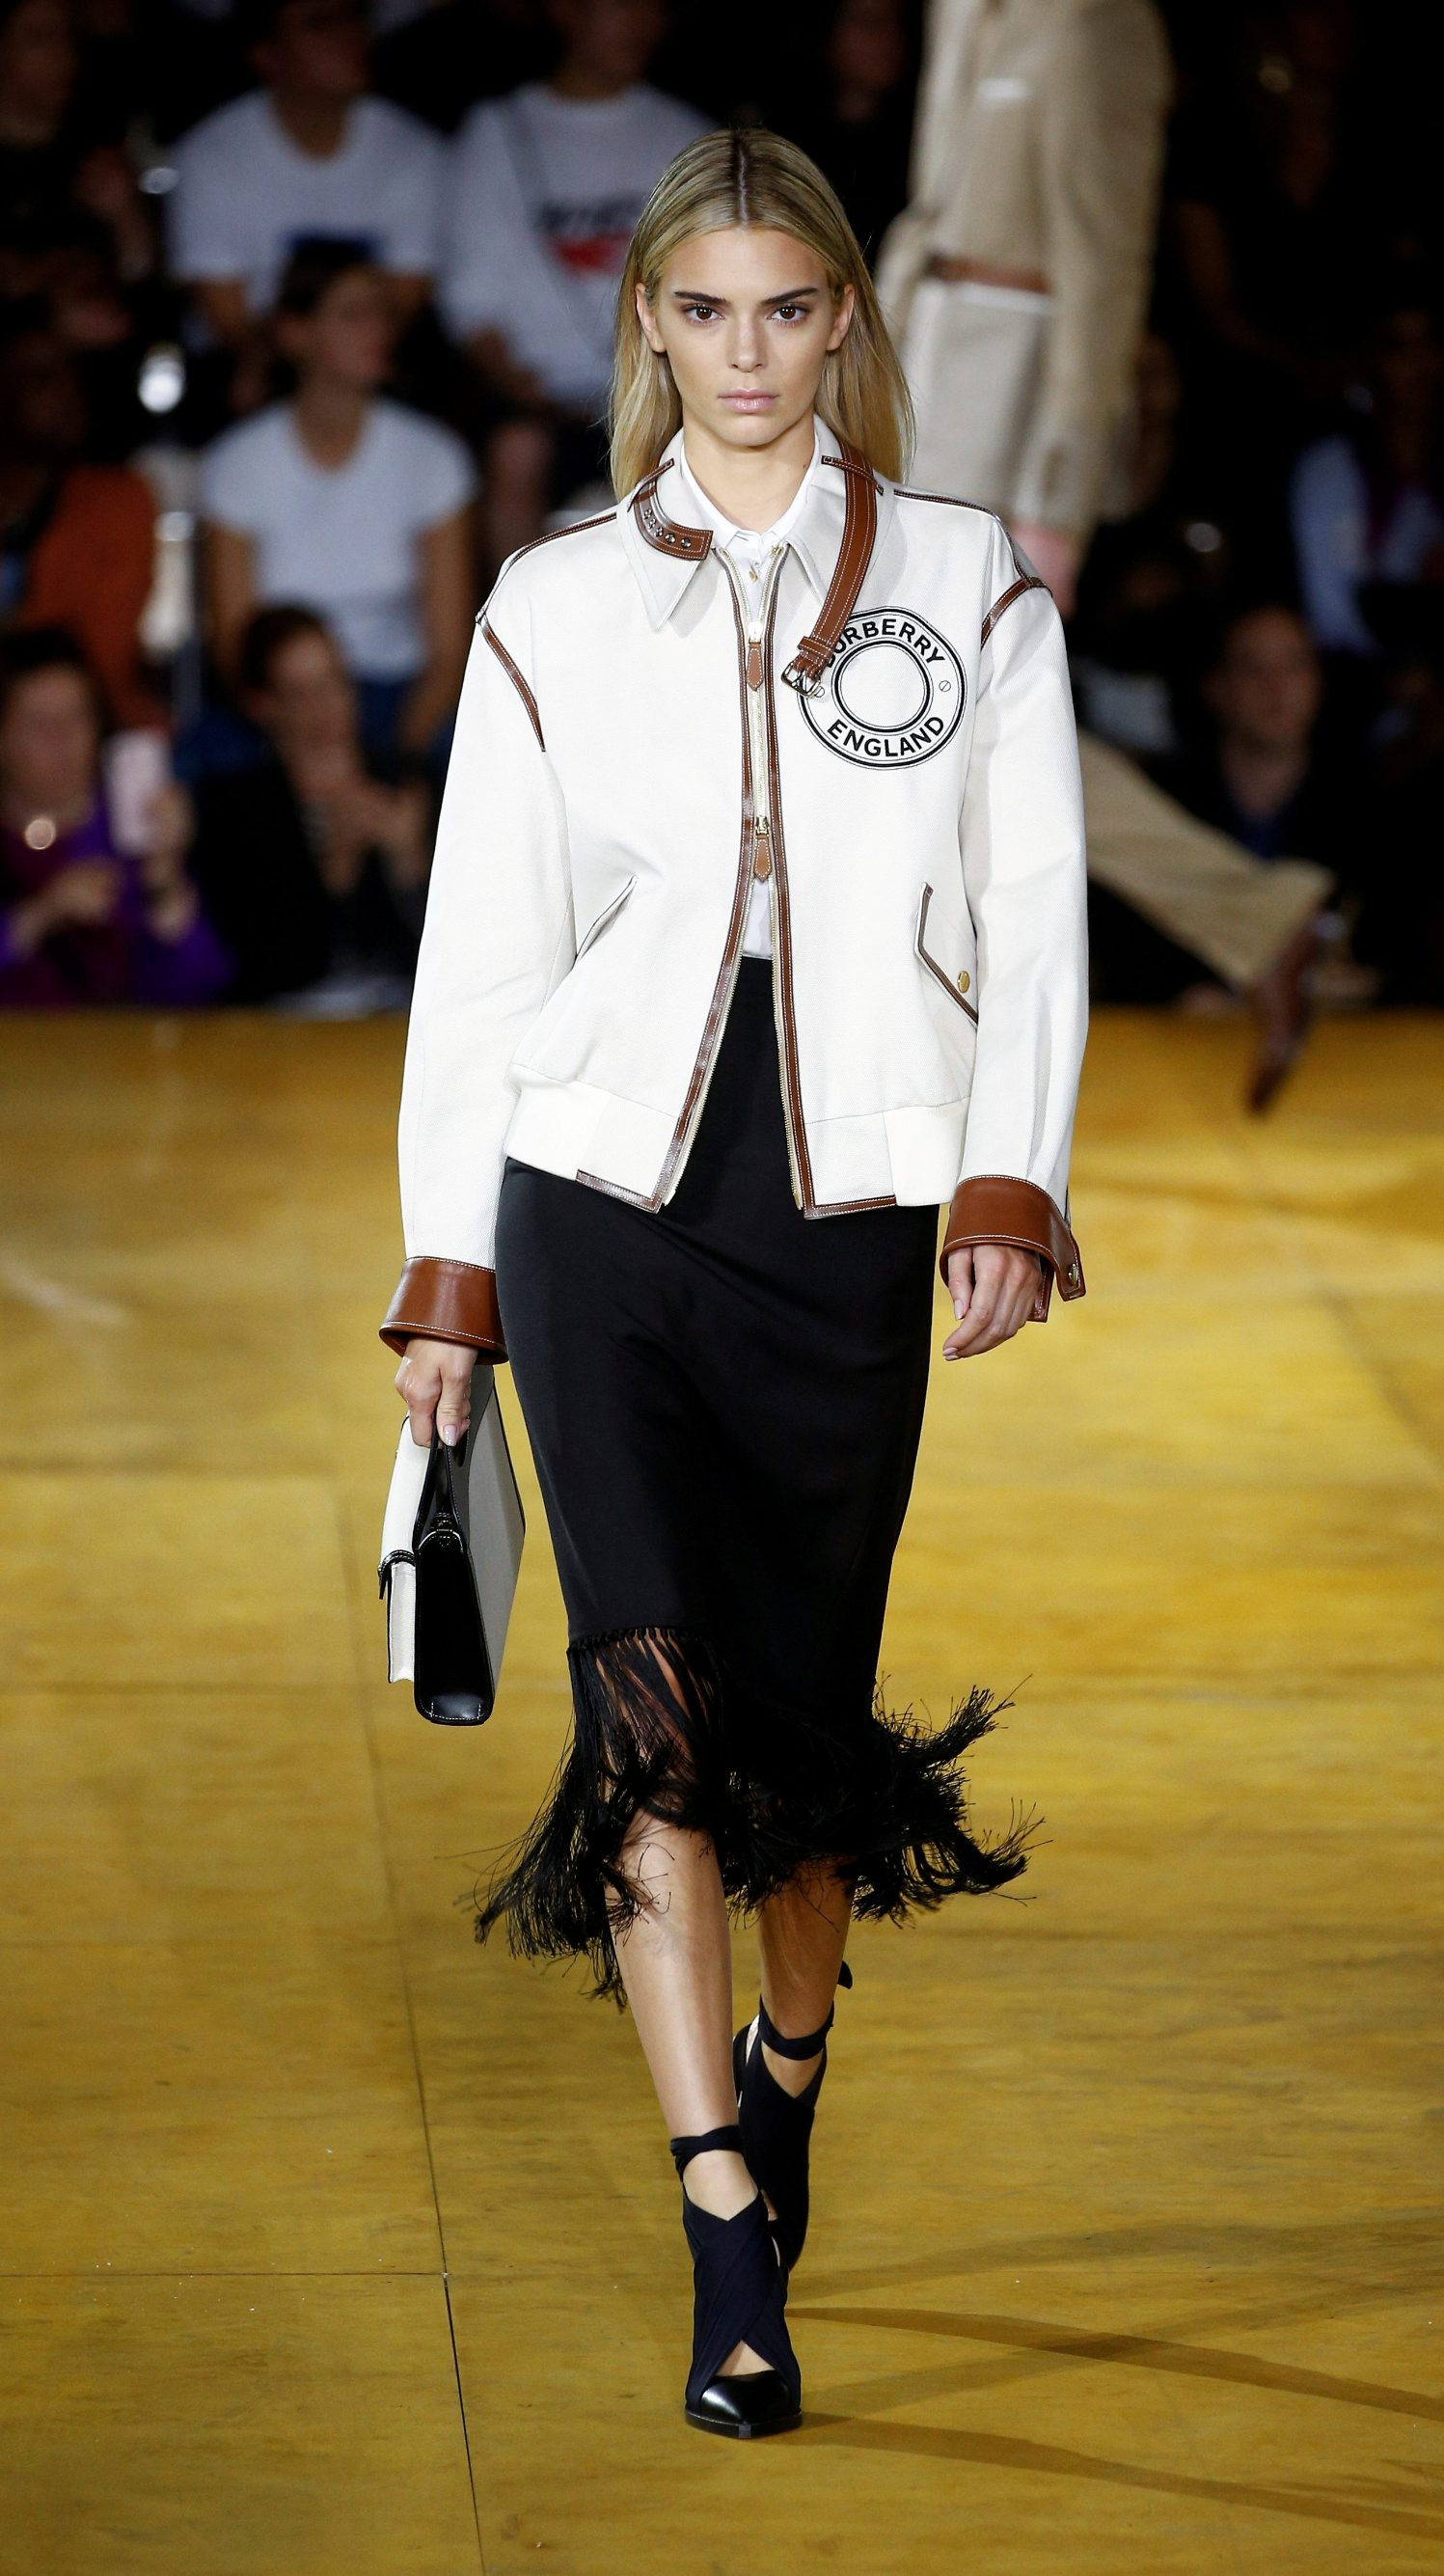 FILE PHOTO: Model Kendall Jenner presents a creation during the Burberry catwalk show at London Fashion Week in London, Britain, September 16, 2019. REUTERS/Henry Nicholls/File Photo